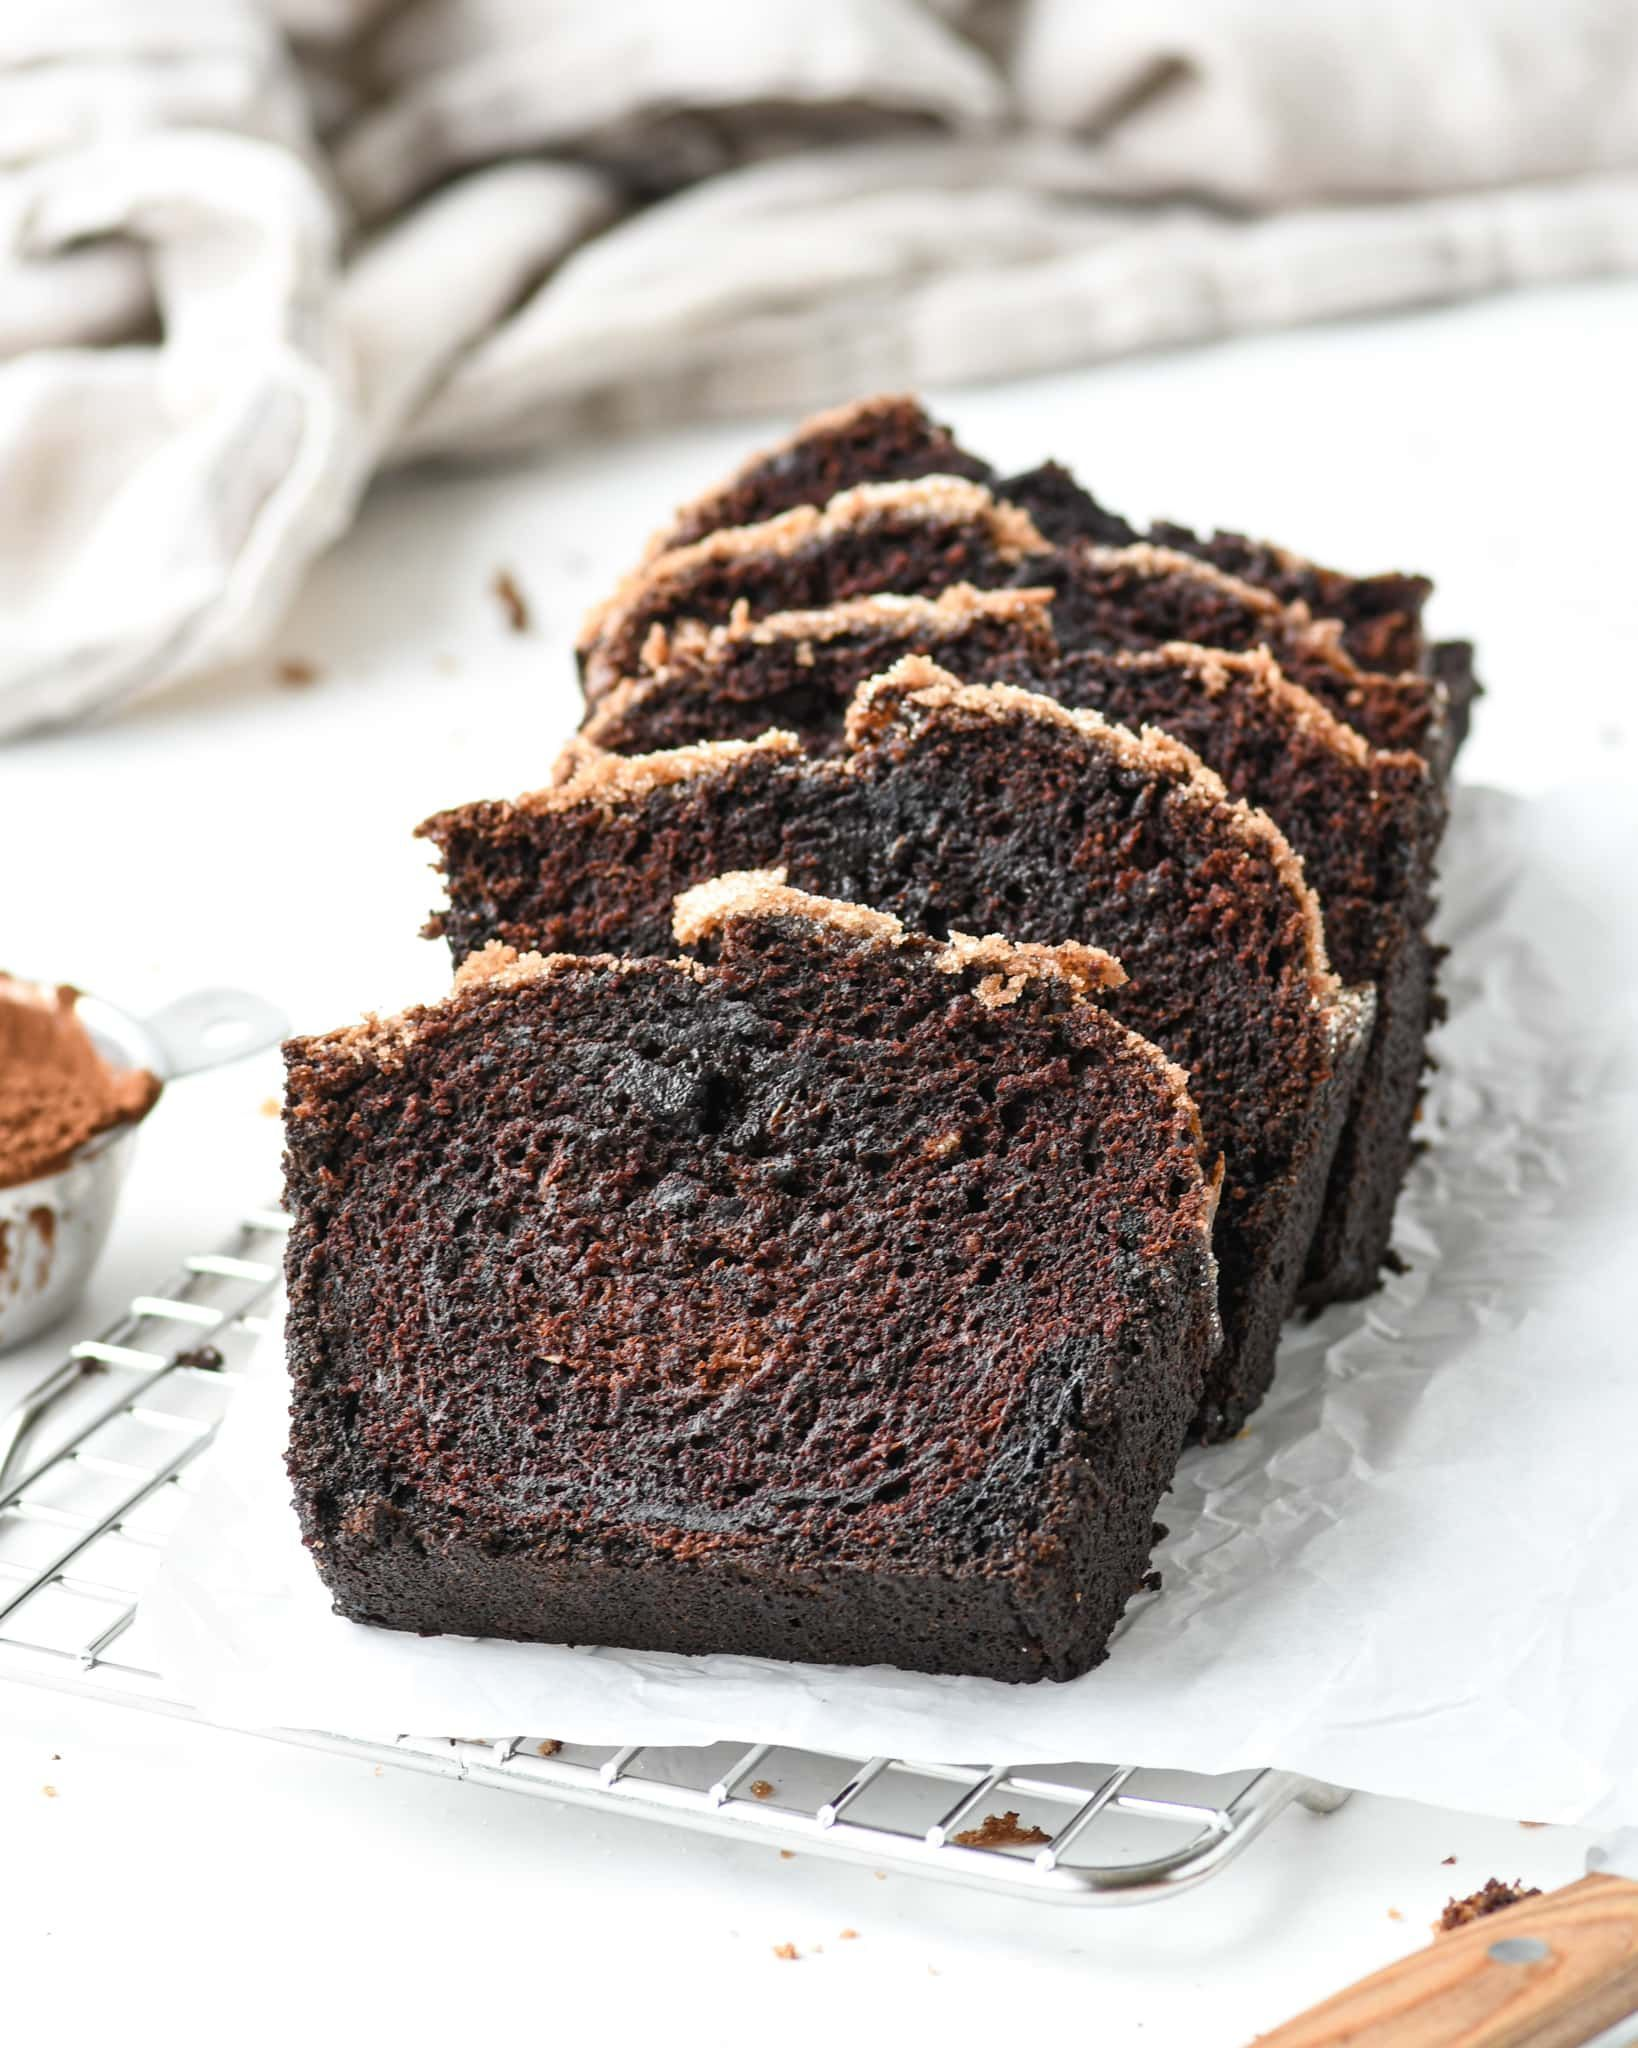 Olive Oil Chocolate Zucchini Bread Buttermilk By Sam Recipe In 2020 Chocolate Zucchini Bread Chocolate Zucchini Chocolate Bread